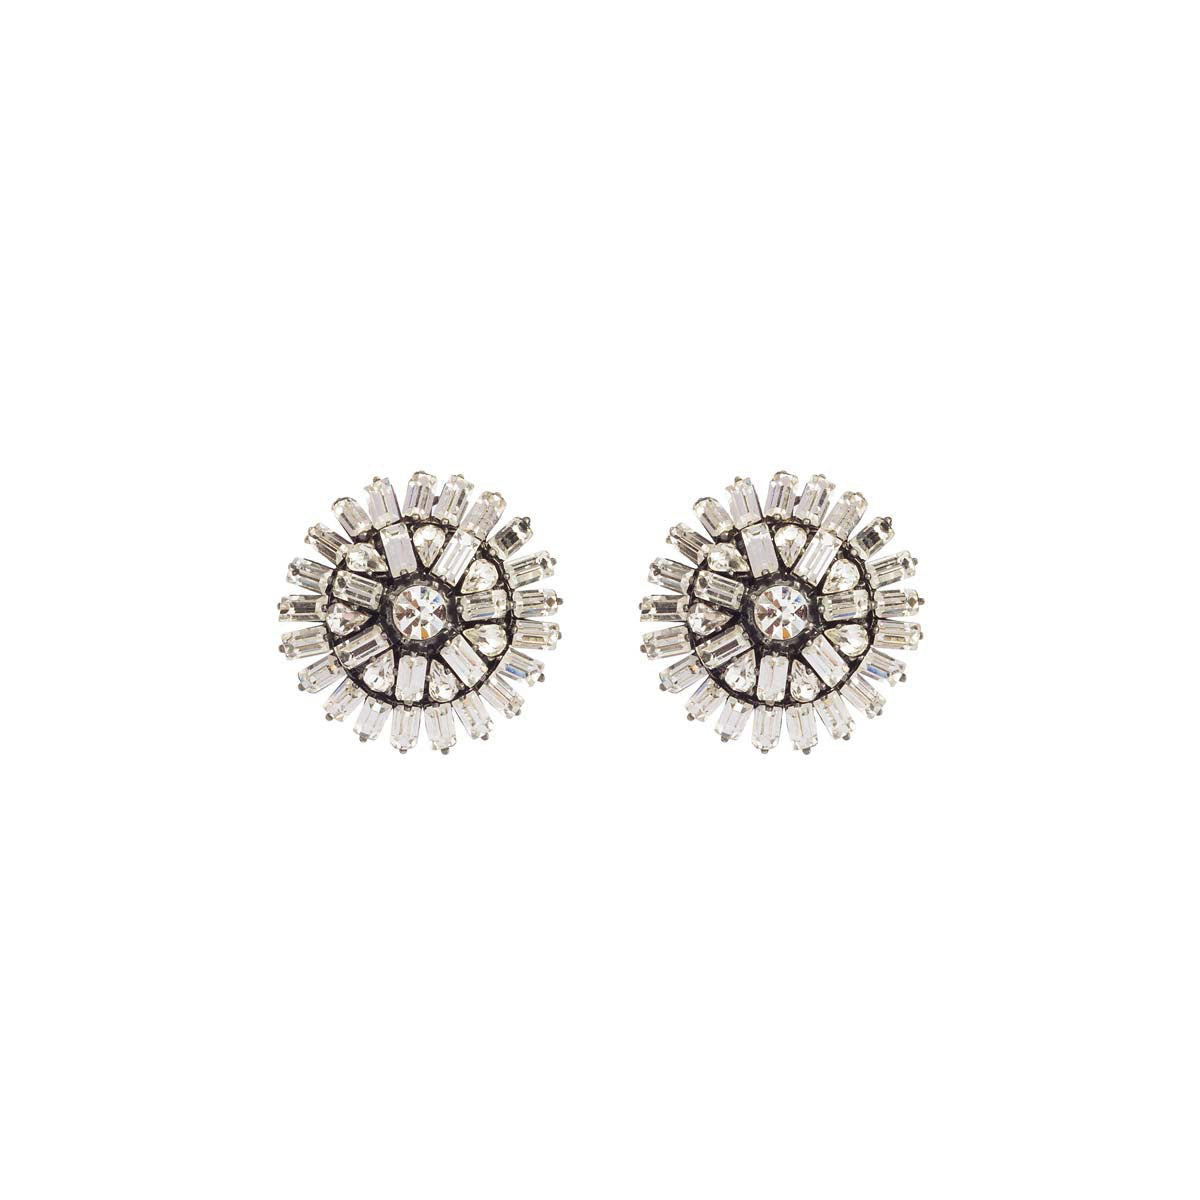 These earrings will be your ultimate rock when you need them the most! They are exquisite in their stone detailing with rhodium plating and luxurious Swarovski crystals.